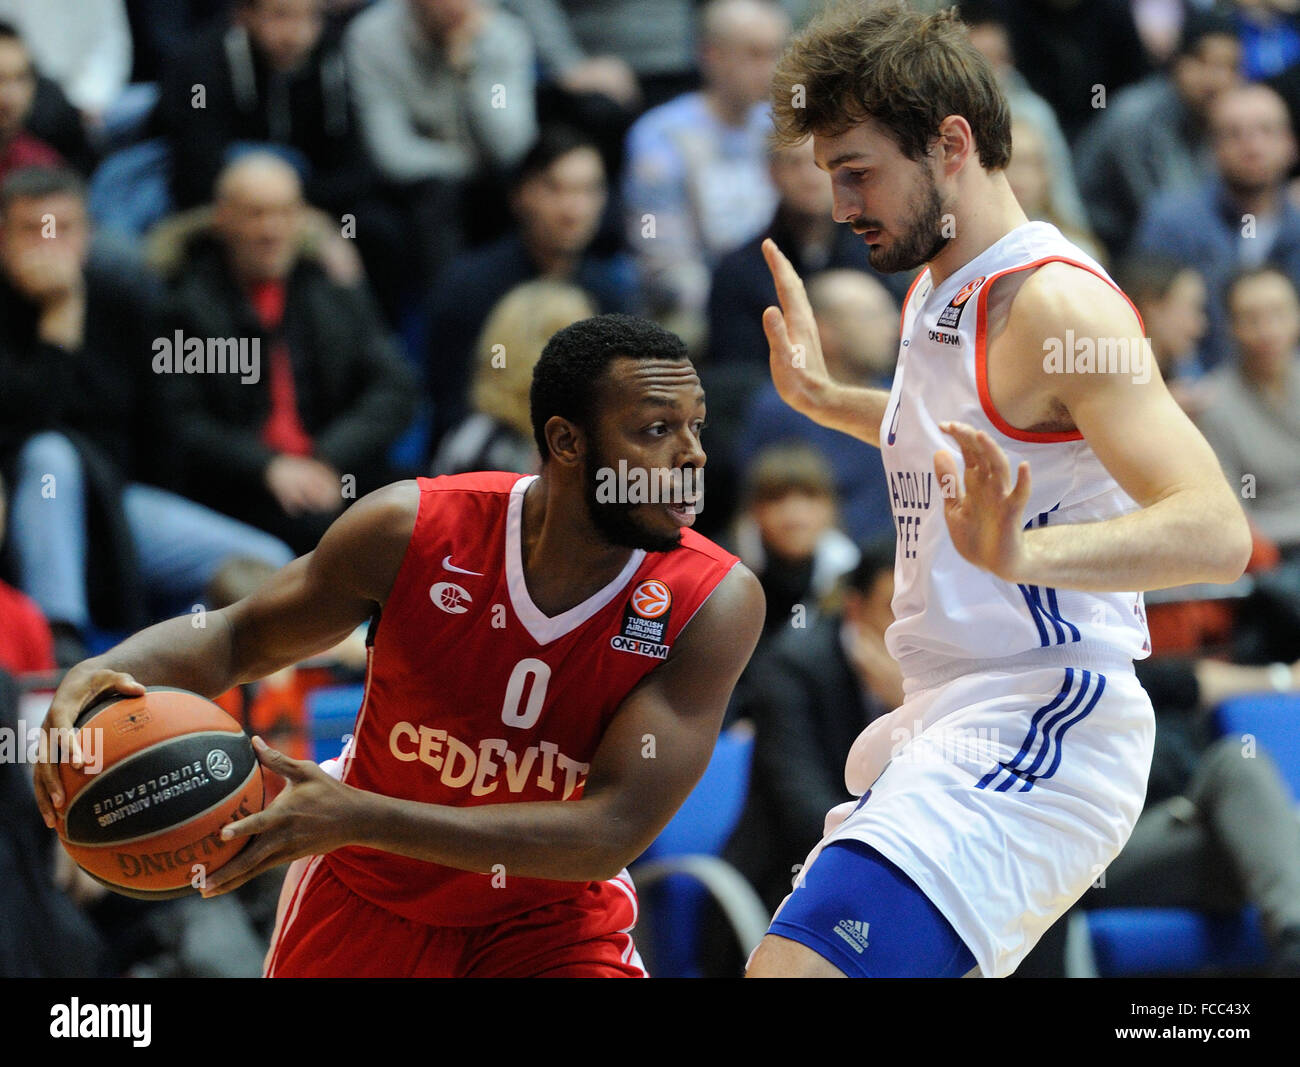 Zagreb, Croatia. 21st Jan, 2016. Jacob Pullen of Cedevita Zagreb (L) competes during Euroleague Top 16 basketball - Stock Image